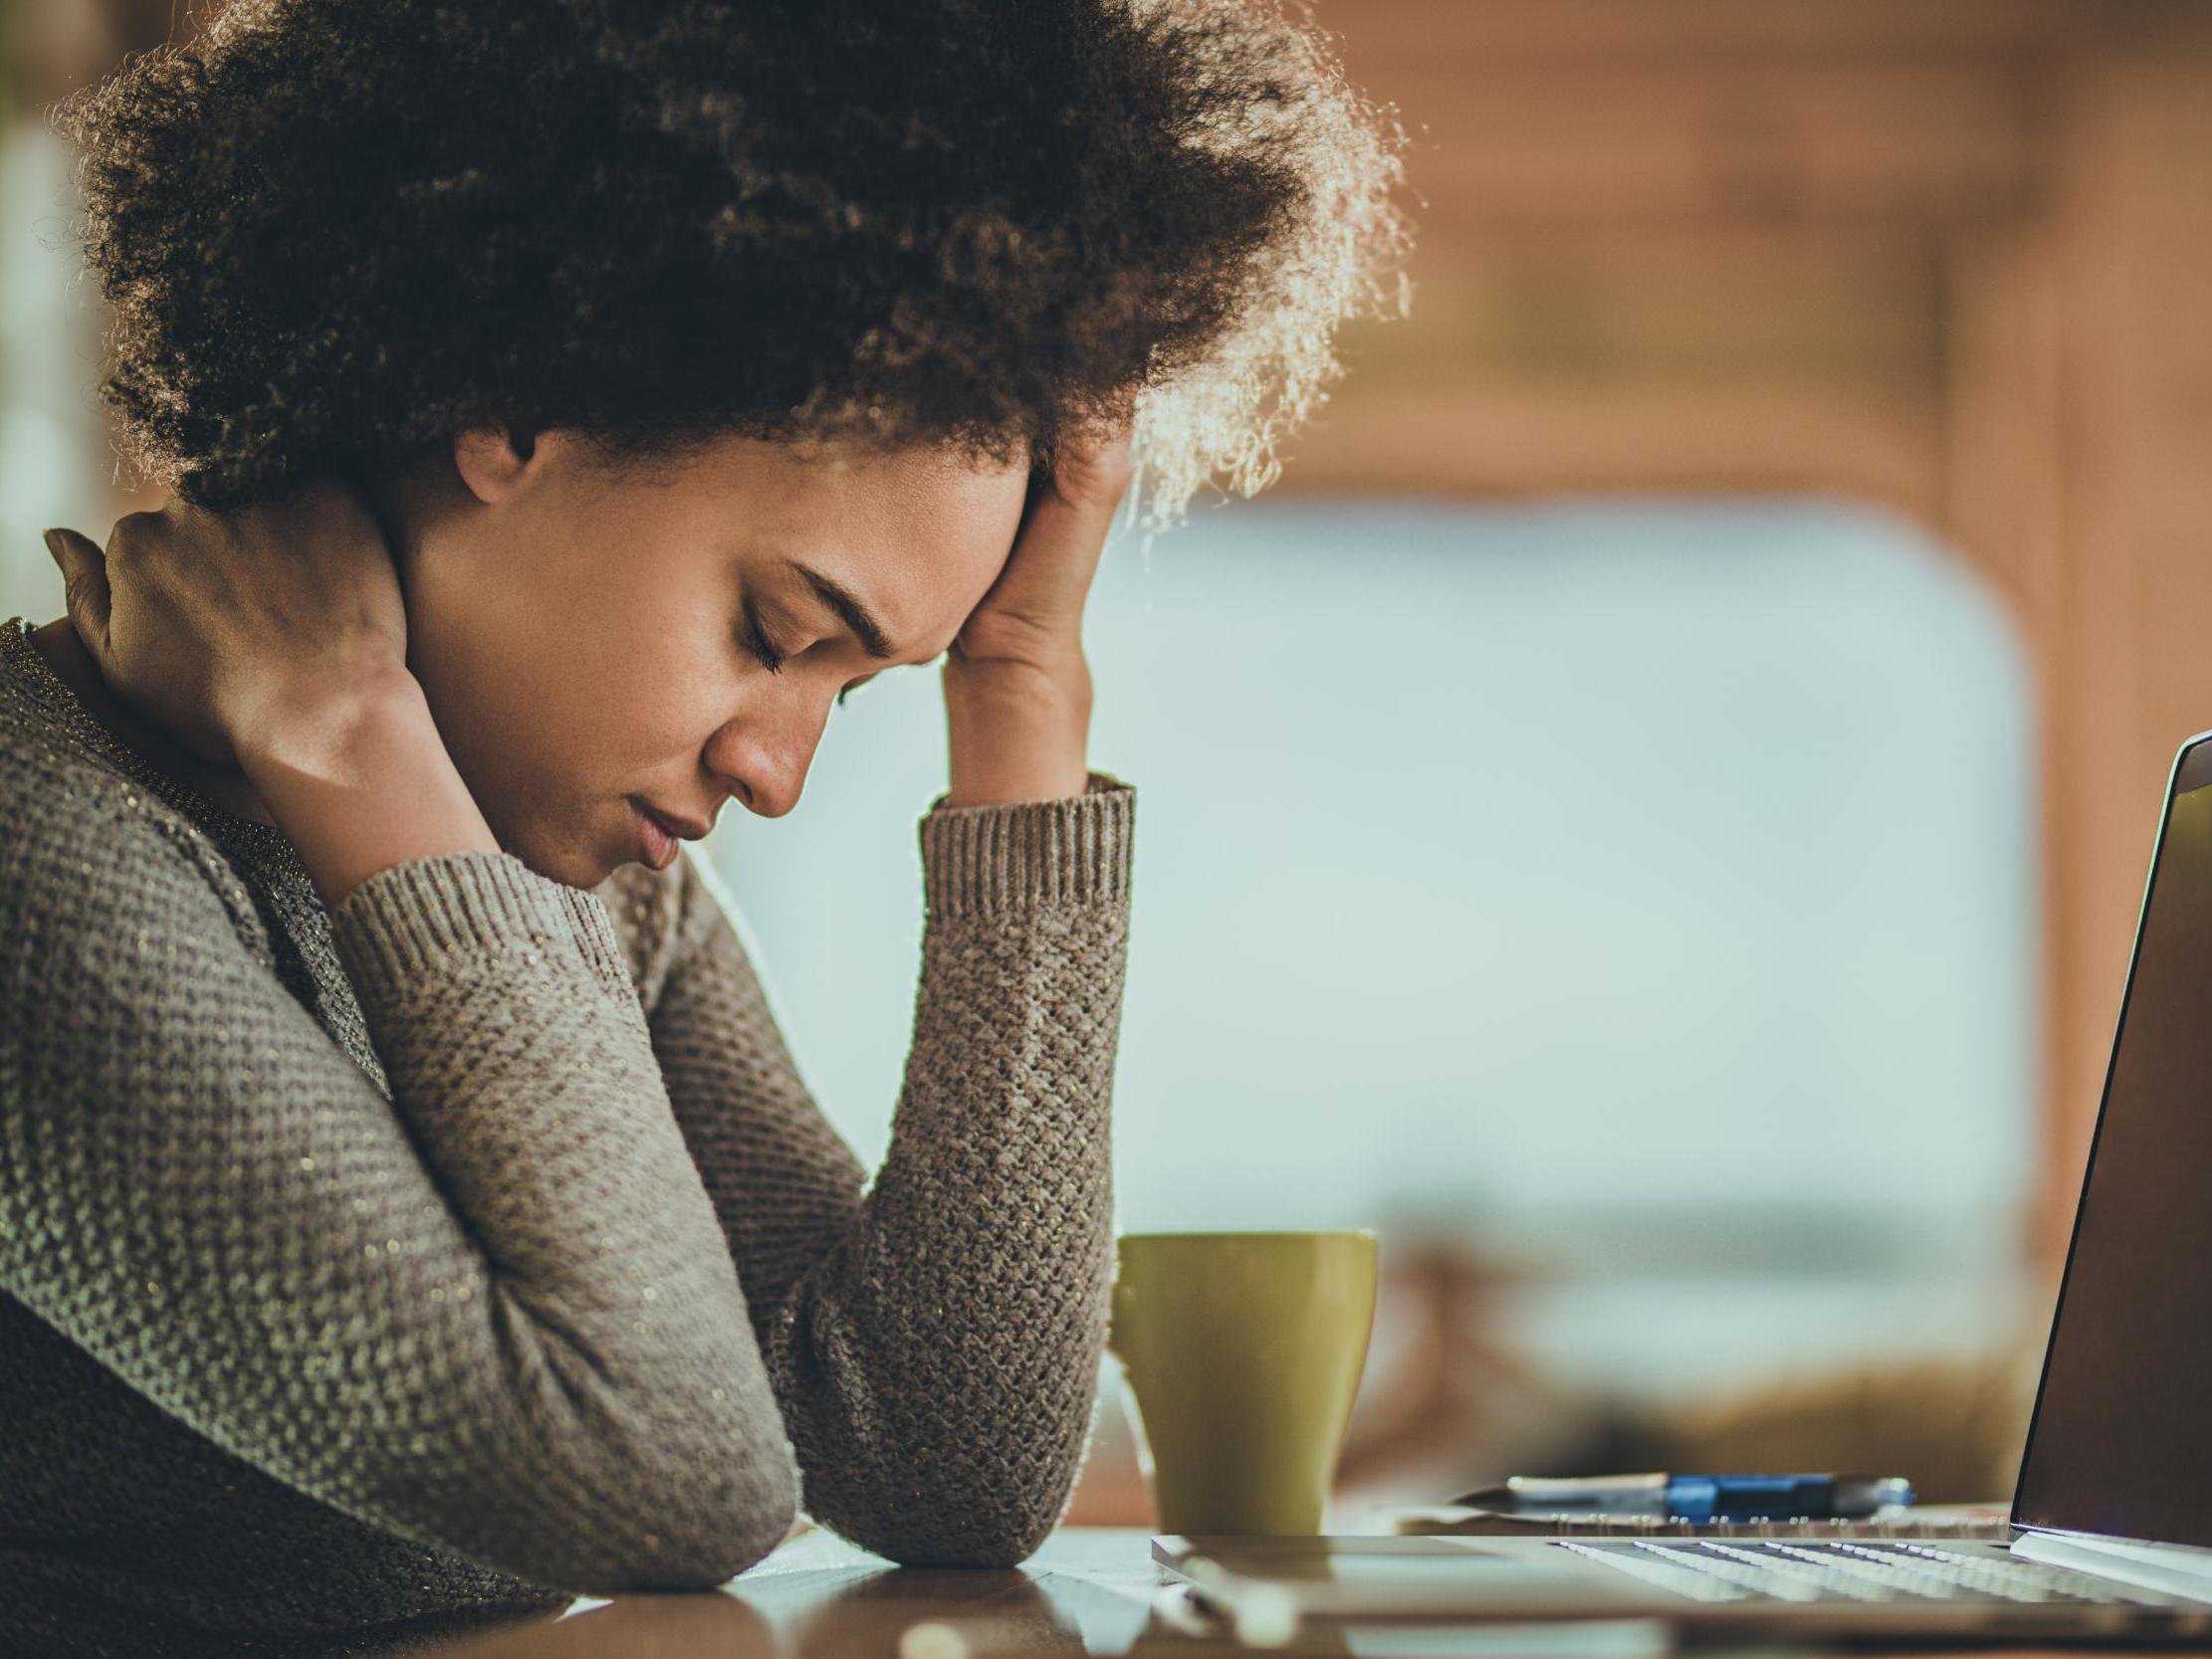 New drug can relieve migraine pain in under two hours